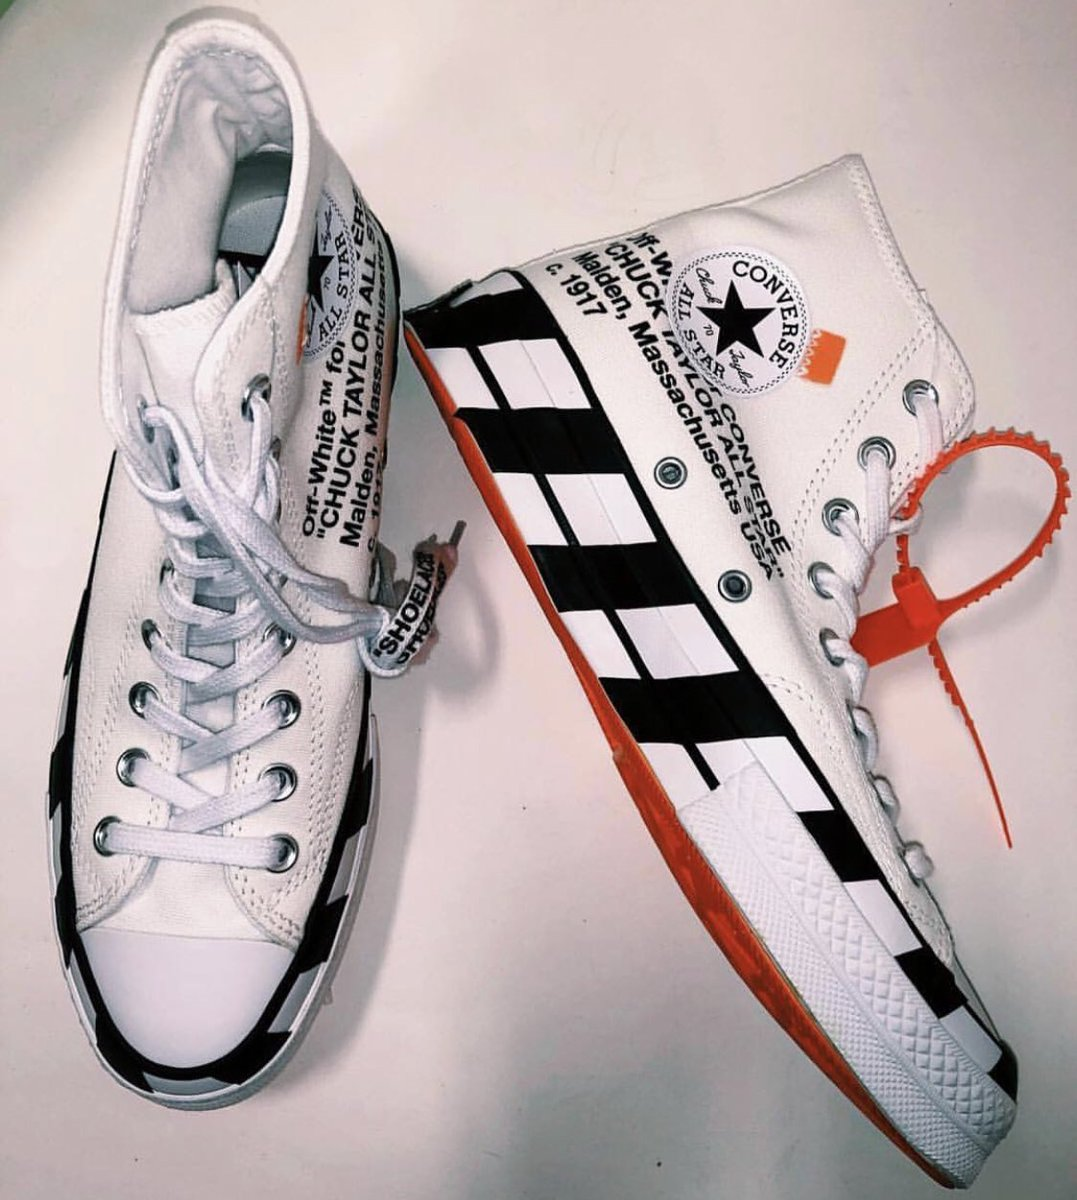 f4704e7aa321 First look at the Off-White x Converse Chuck 70 'Stripe' rumored for October  8th Info and pics via @SoleCollectorpic.twitter.com/Dt1GgPEUzF